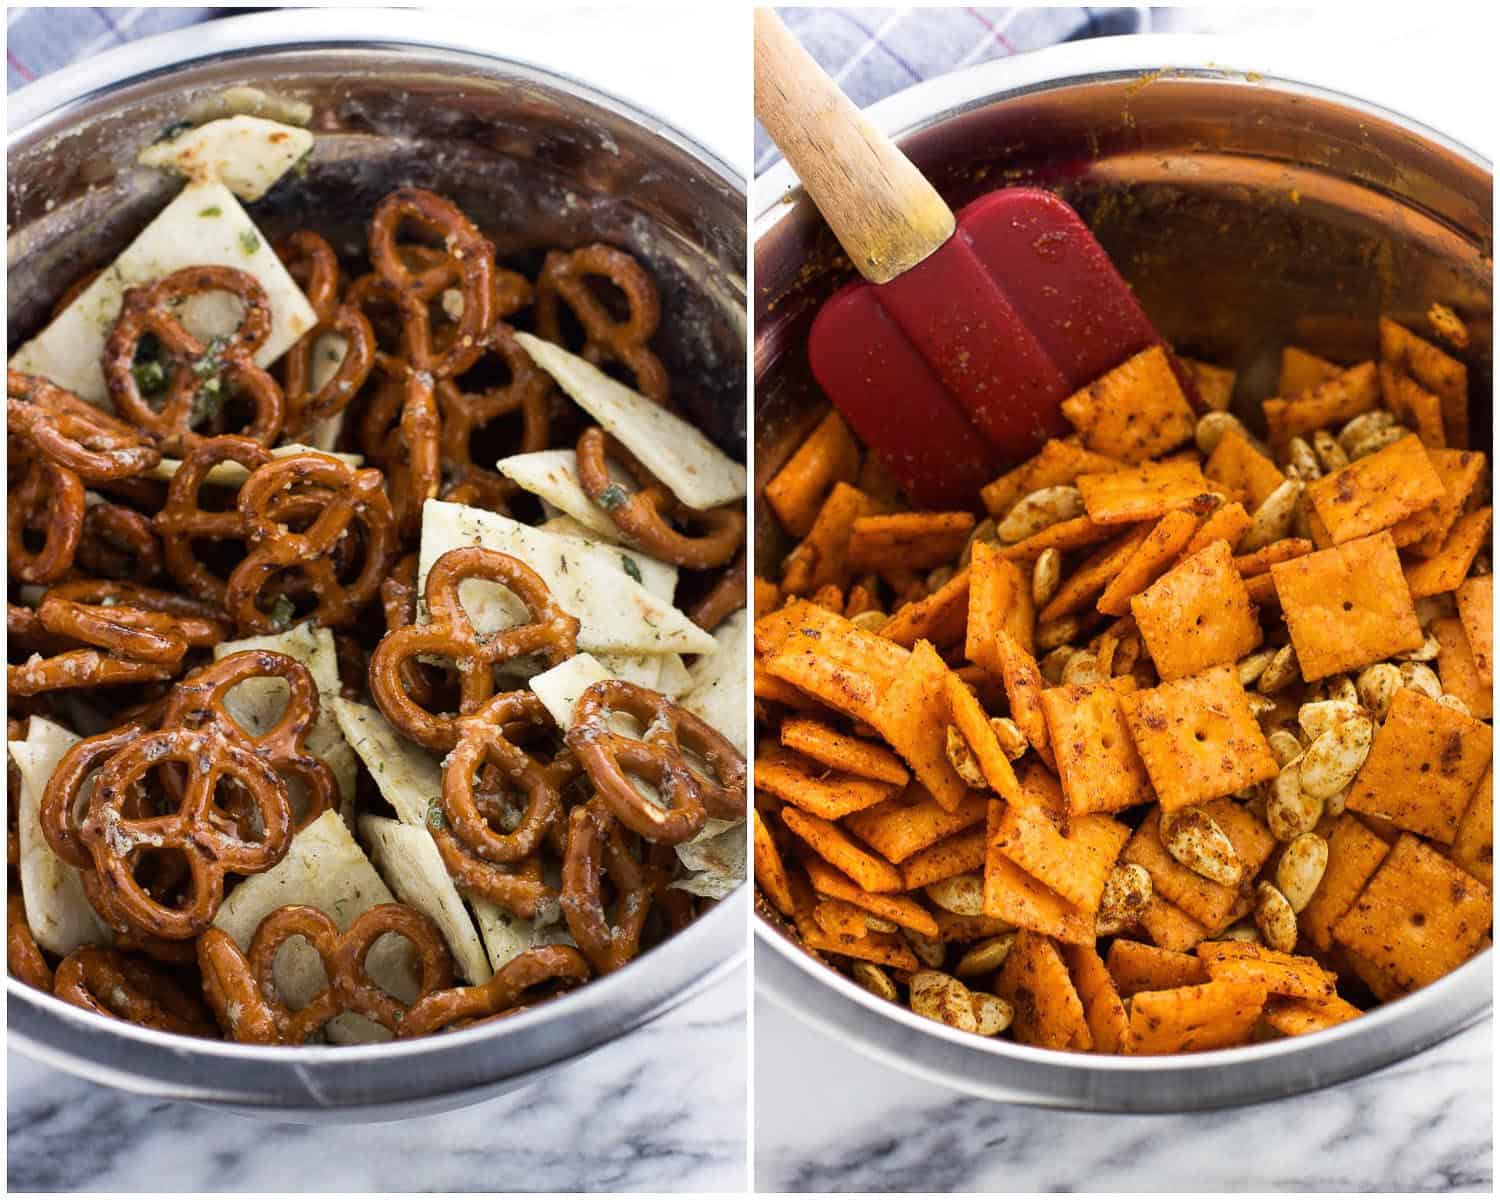 Taco Ranch Popcorn Snack Mix, with cheese crackers, tortilla strips, pumpkin seeds, pretzels, and popcorn, is an easy-to-make snack mix recipe. Perfect for Game Day!